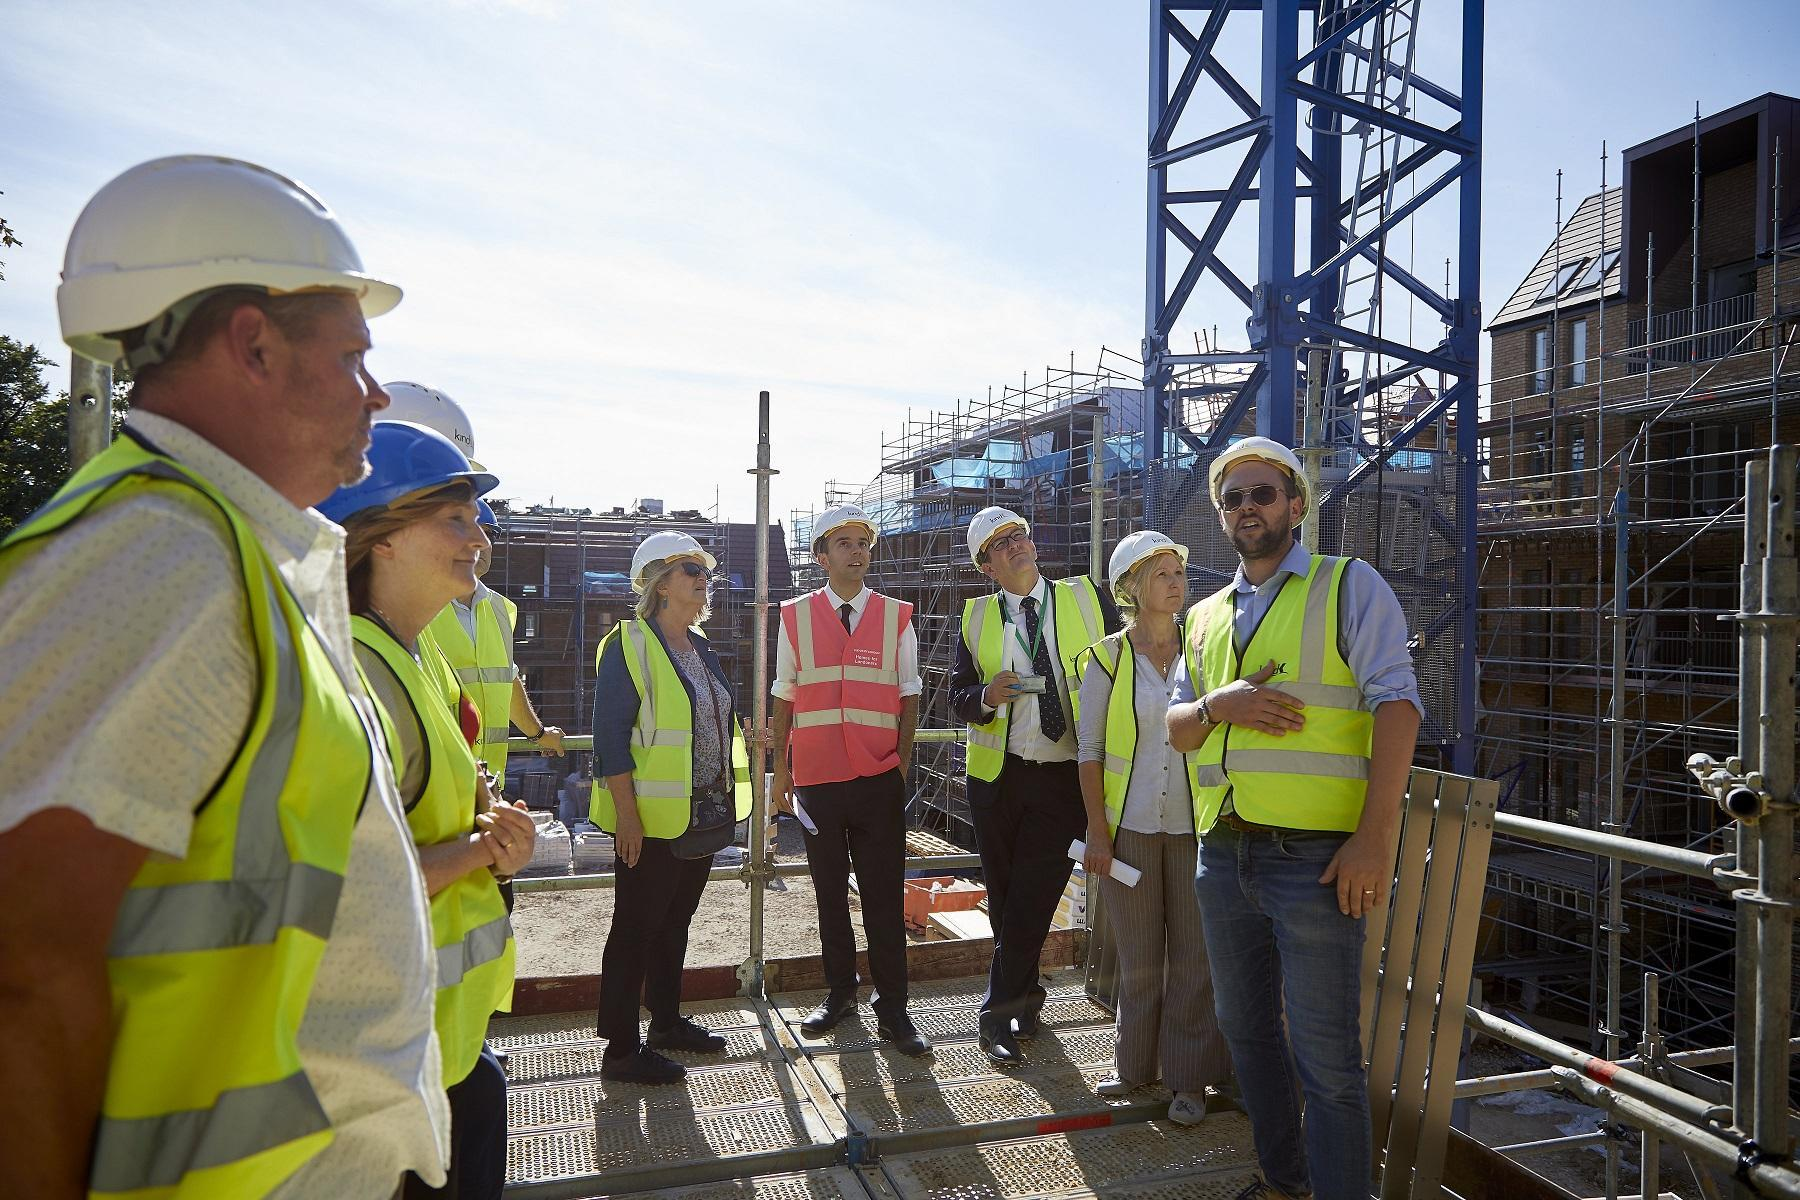 Deputy Mayor for Housing and Residential Development James Murray in the red high-vis jacket